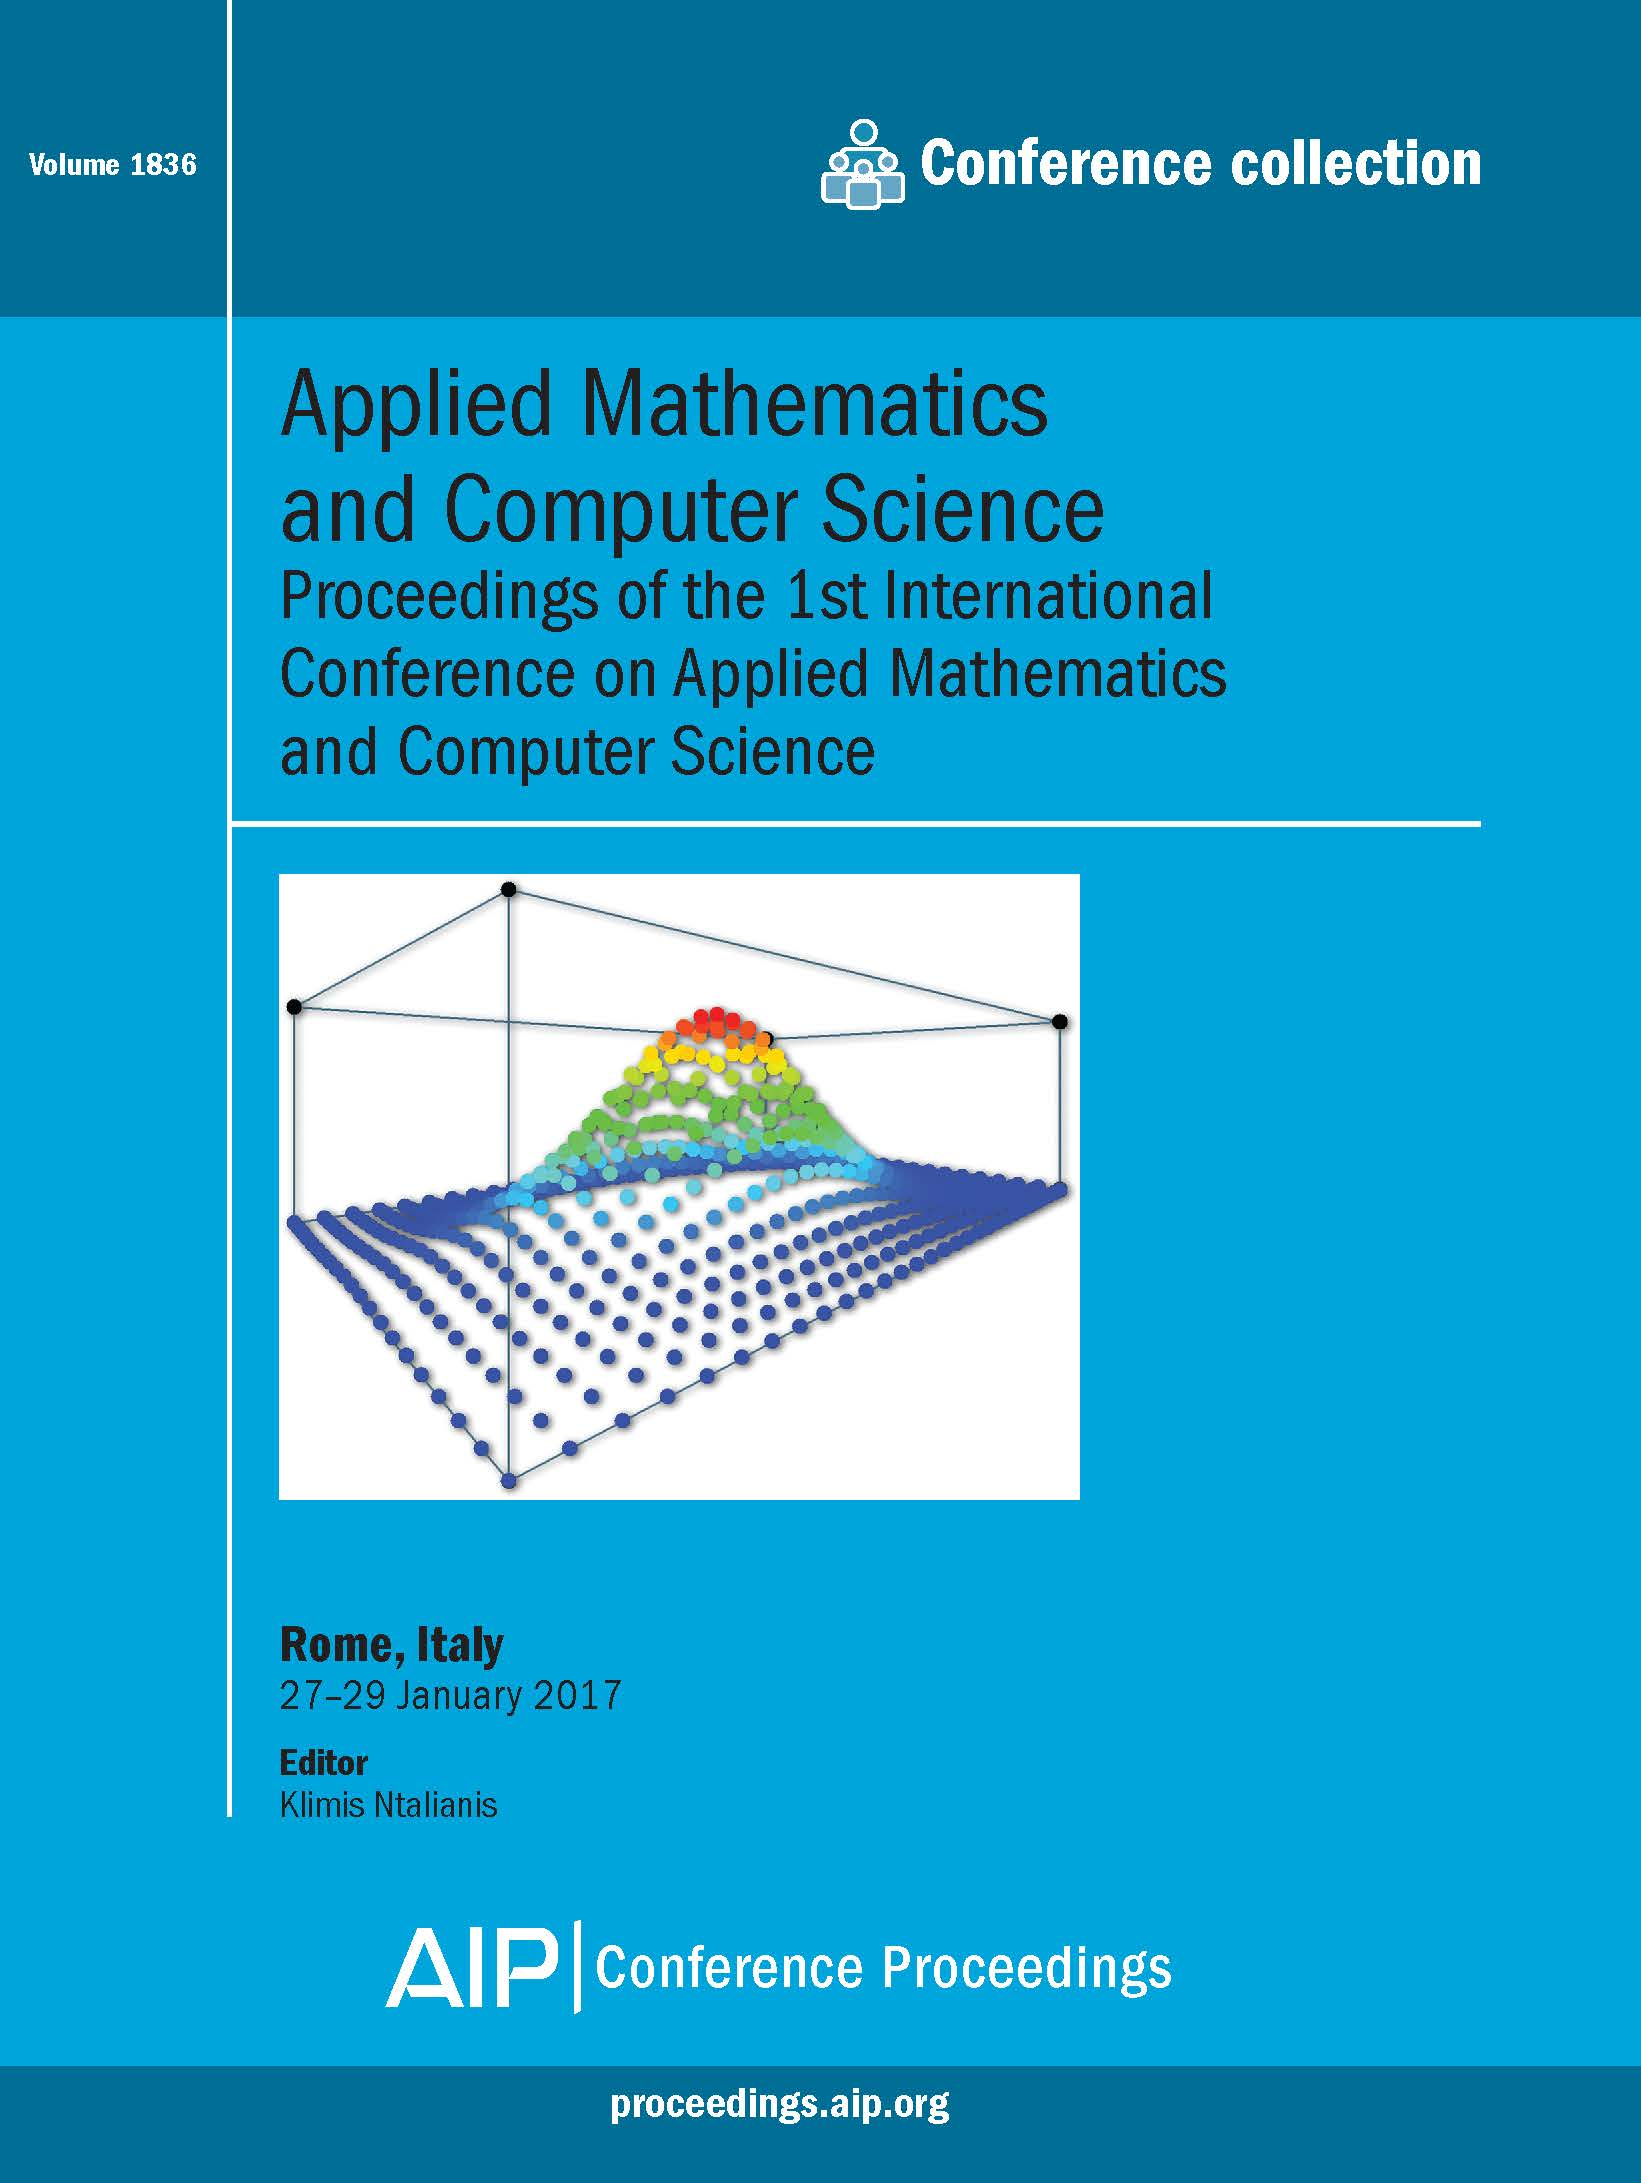 Volume 1836: Applied Mathematics and Computer Science | AIP